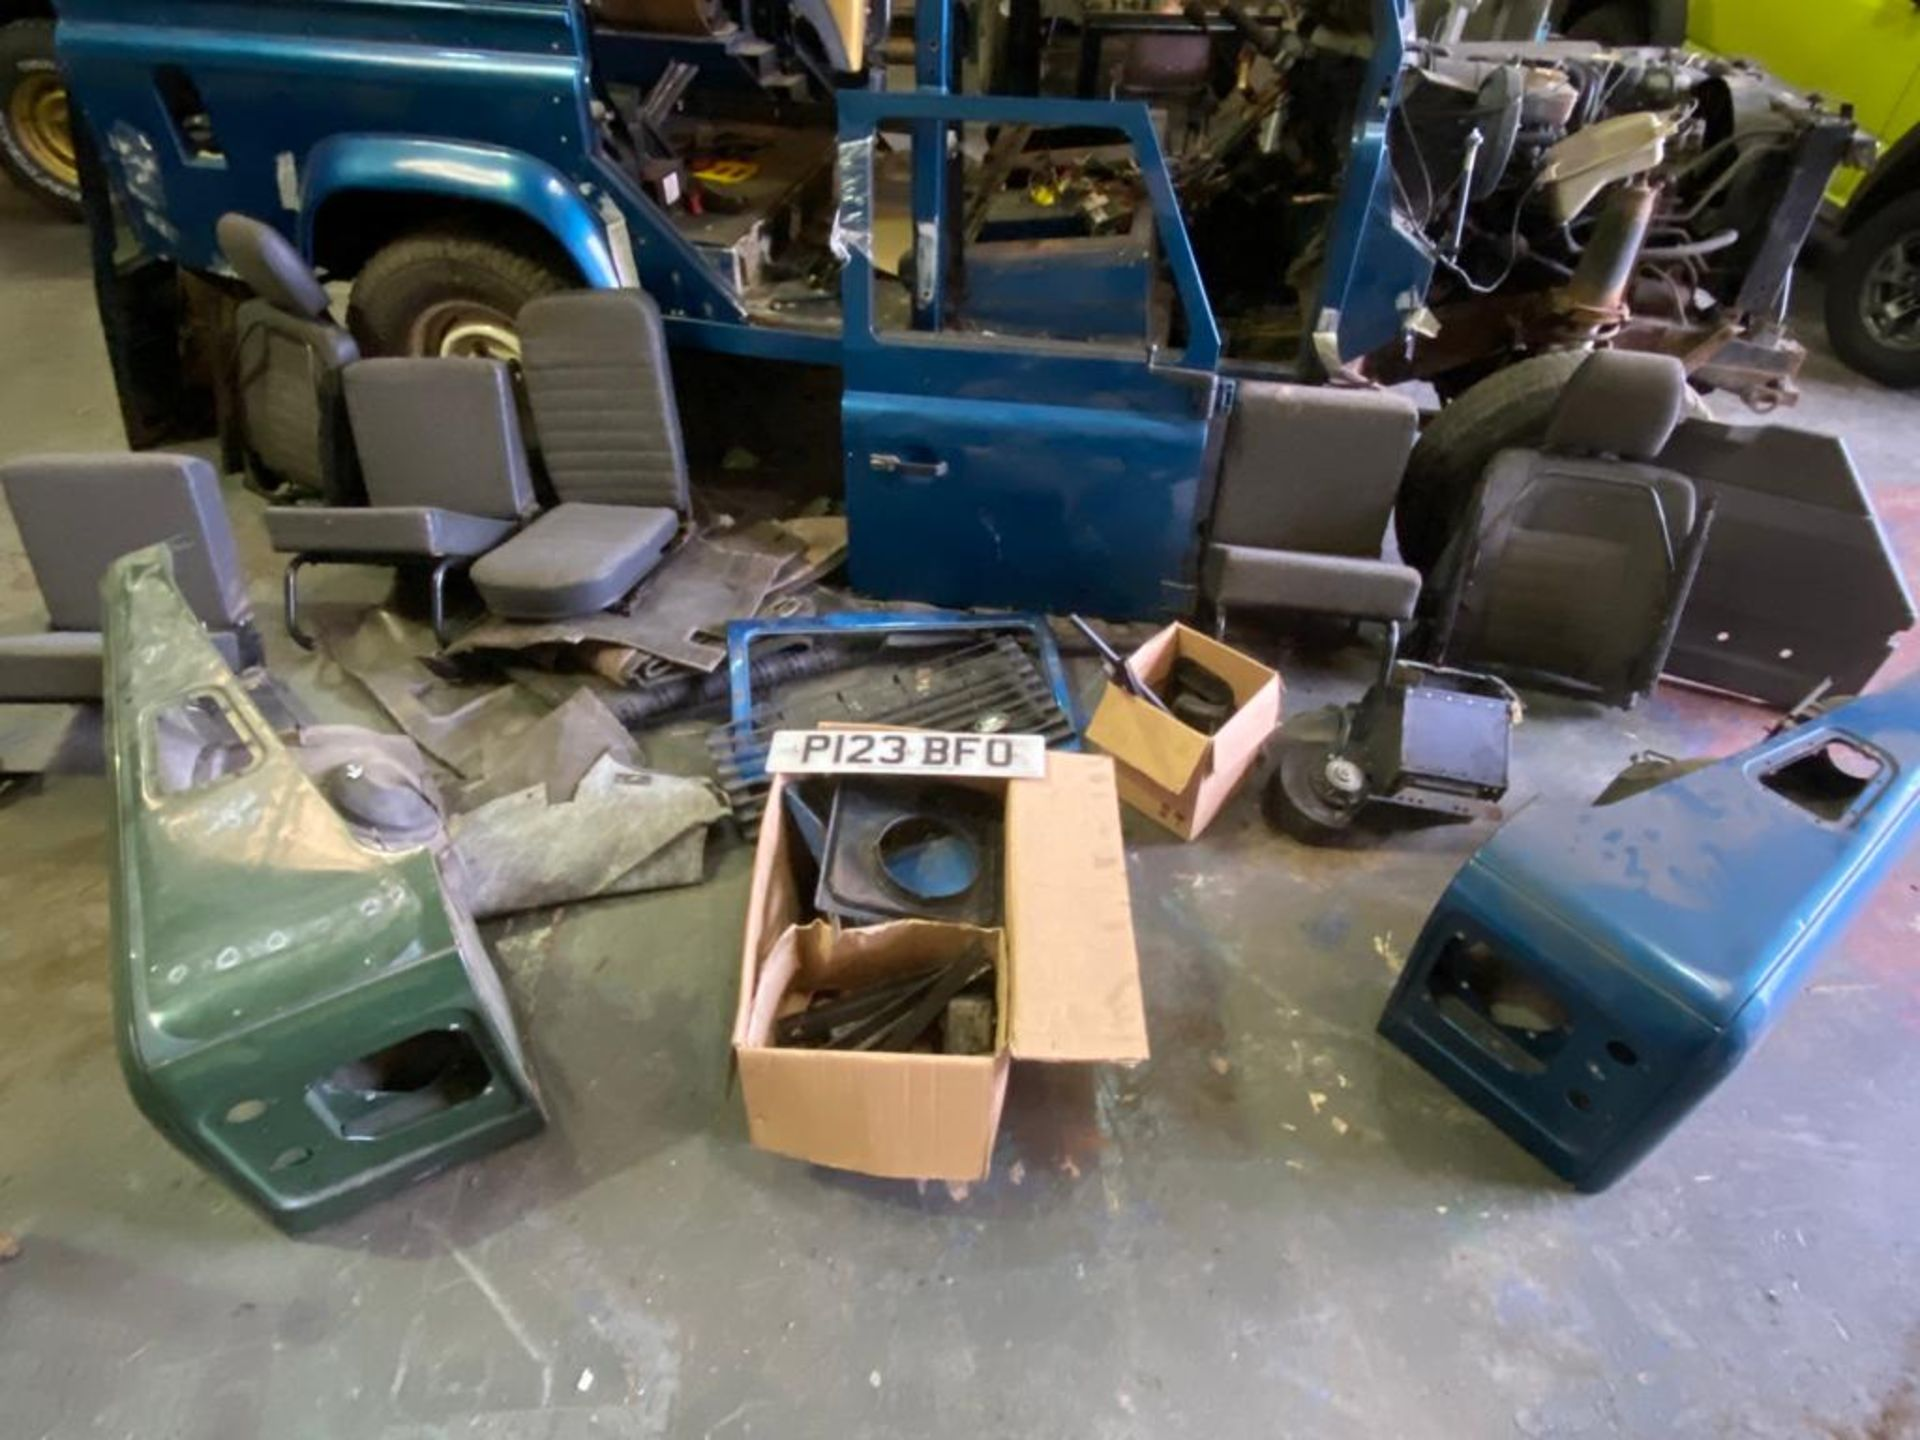 Land Rover 110 County, 300 TDI Engine Appears Mostly Complete - No Bumper, Bonnet, Glass etc As - Image 15 of 26